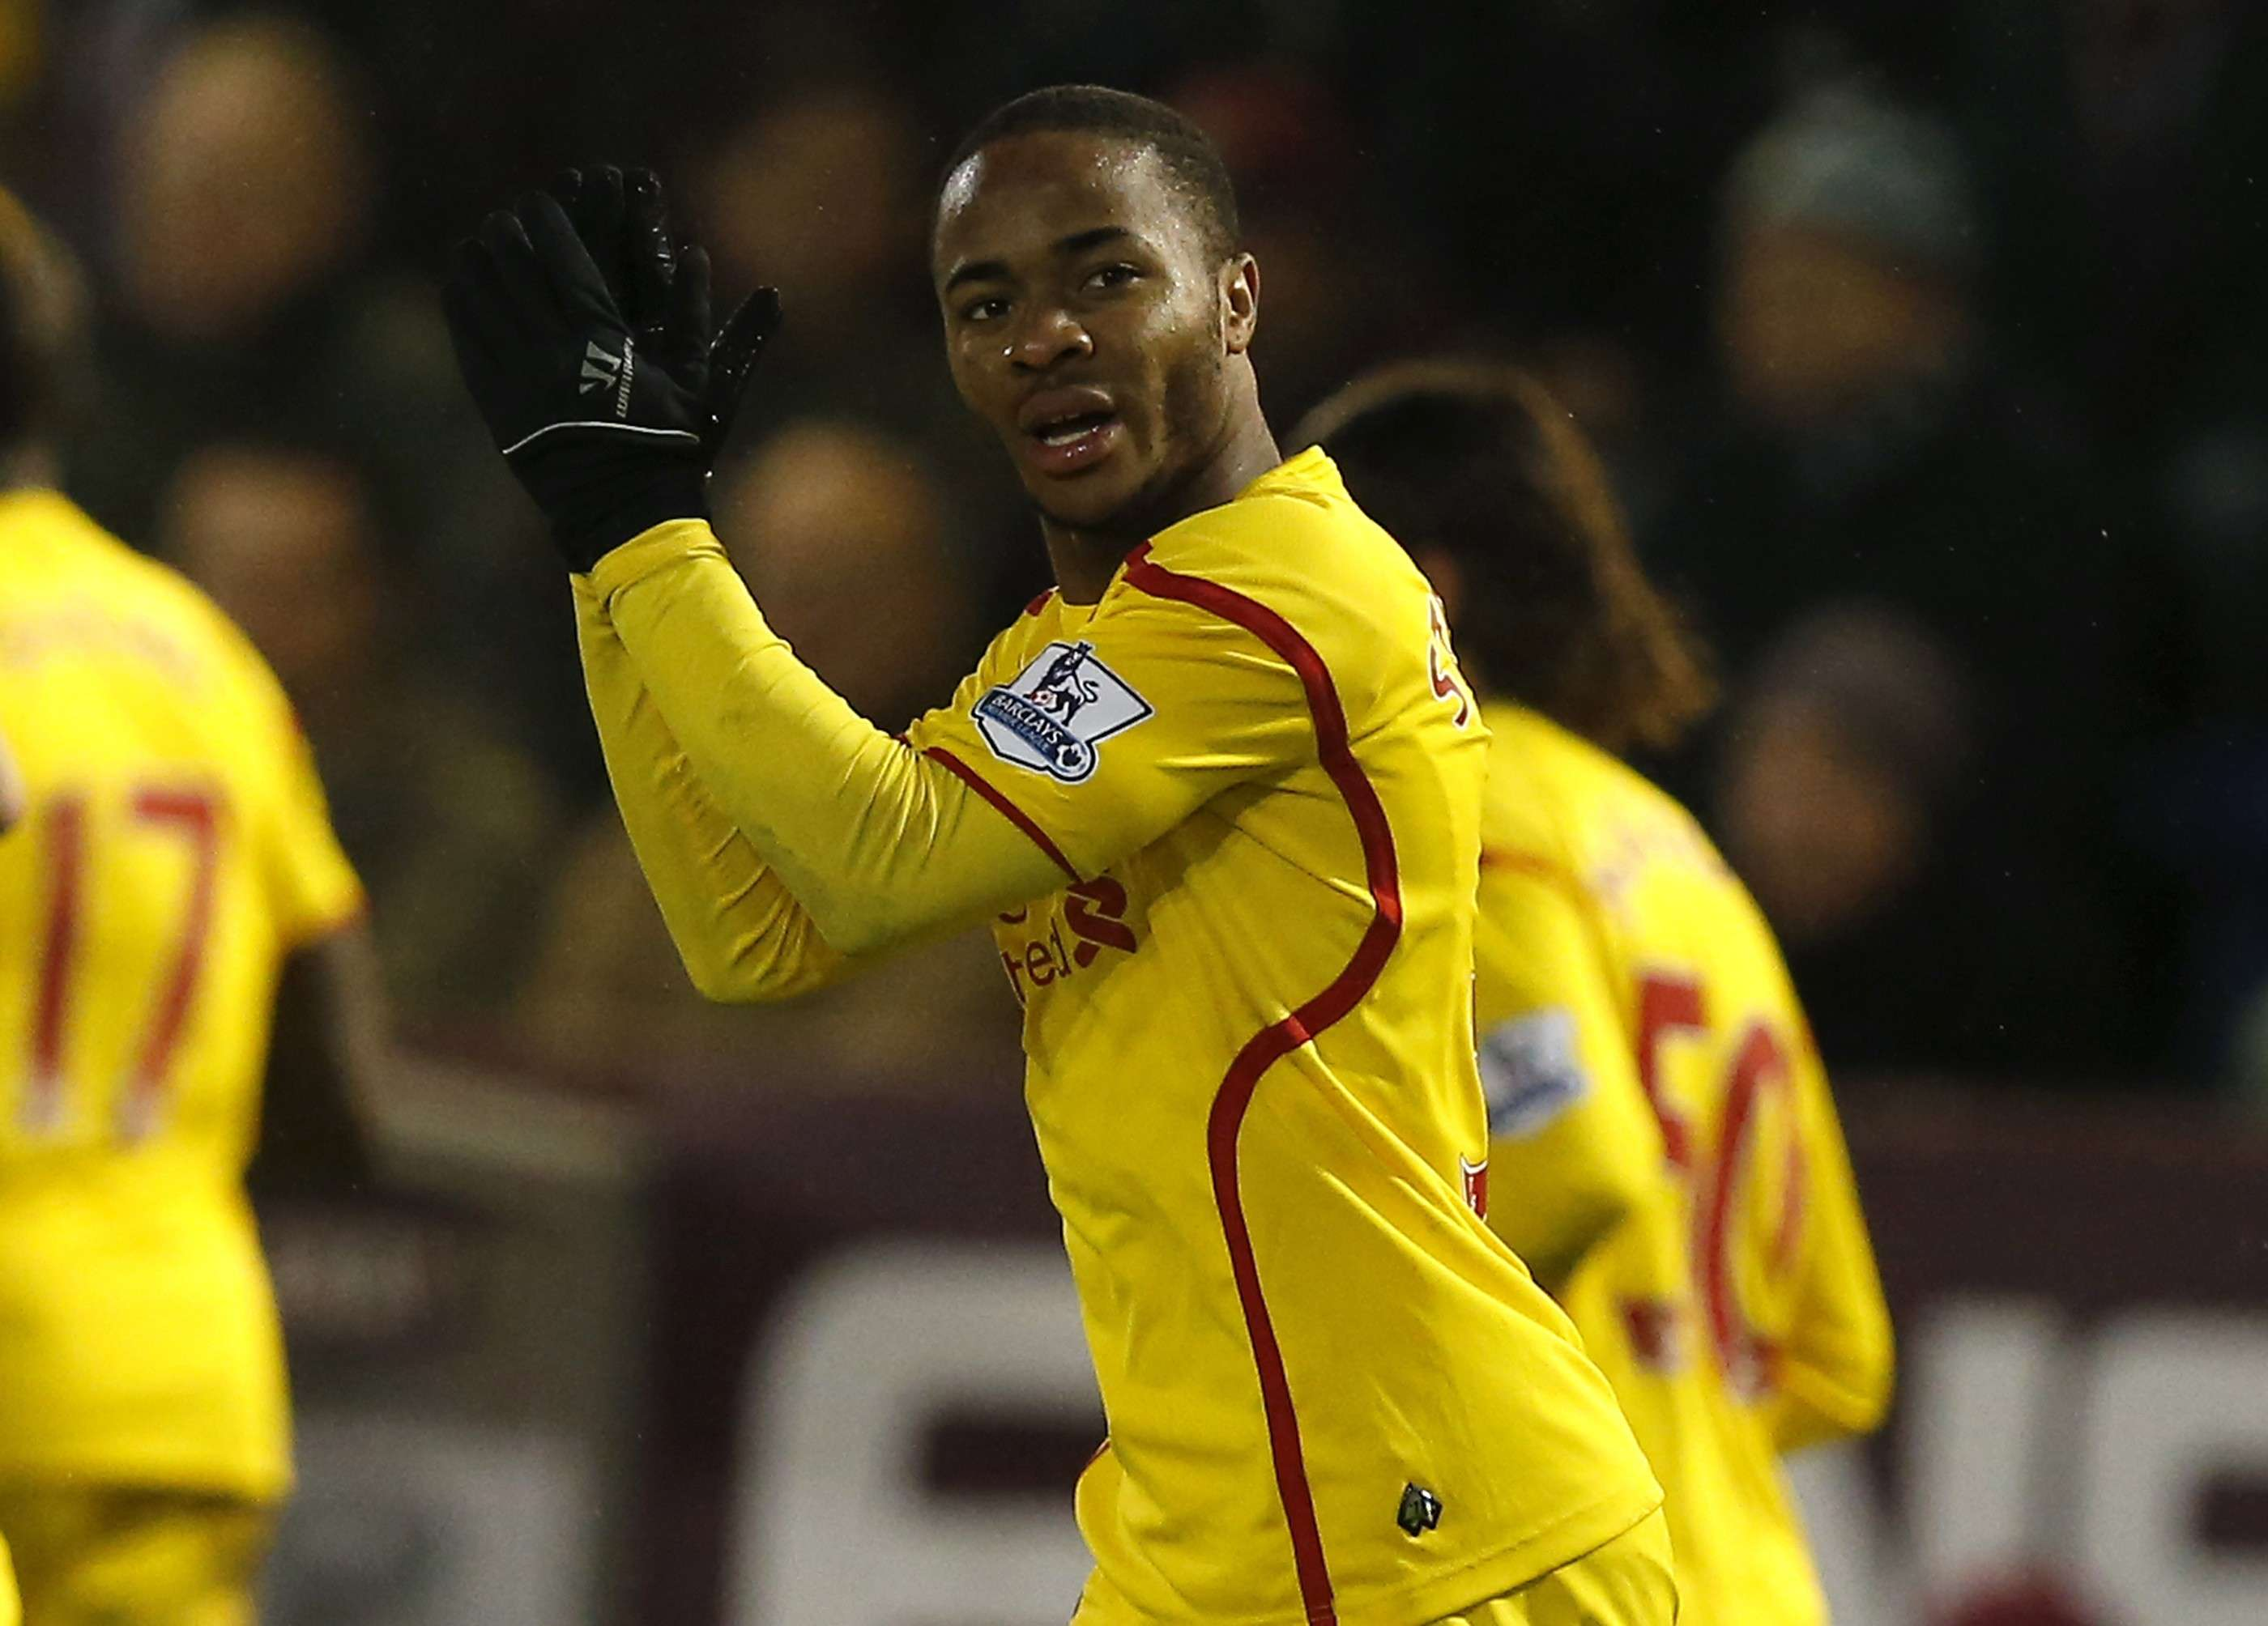 """Liverpool's Raheem Sterling celebrates after scoring the opening goal during their English Premier League soccer match against Burnley at Turf Moor in Burnley, northern England December 26, 2014. REUTERS/Andrew Yates (BRITAIN - Tags: SPORT SOCCER) NO USE WITH UNAUTHORIZED AUDIO, VIDEO, DATA, FIXTURE LISTS, CLUB/LEAGUE LOGOS OR """"LIVE"""" SERVICES. ONLINE IN-MATCH USE LIMITED TO 45 IMAGES, NO VIDEO EMULATION. NO USE IN BETTING, GAMES OR SINGLE CLUB/LEAGUE/PLAYER PUBLICATIONS. FOR EDITORIAL USE ONLY. NOT FOR SALE FOR MARKETING OR ADVERTISING CAMPAIGNS Foto: ANDREW YATES/REUTERS"""